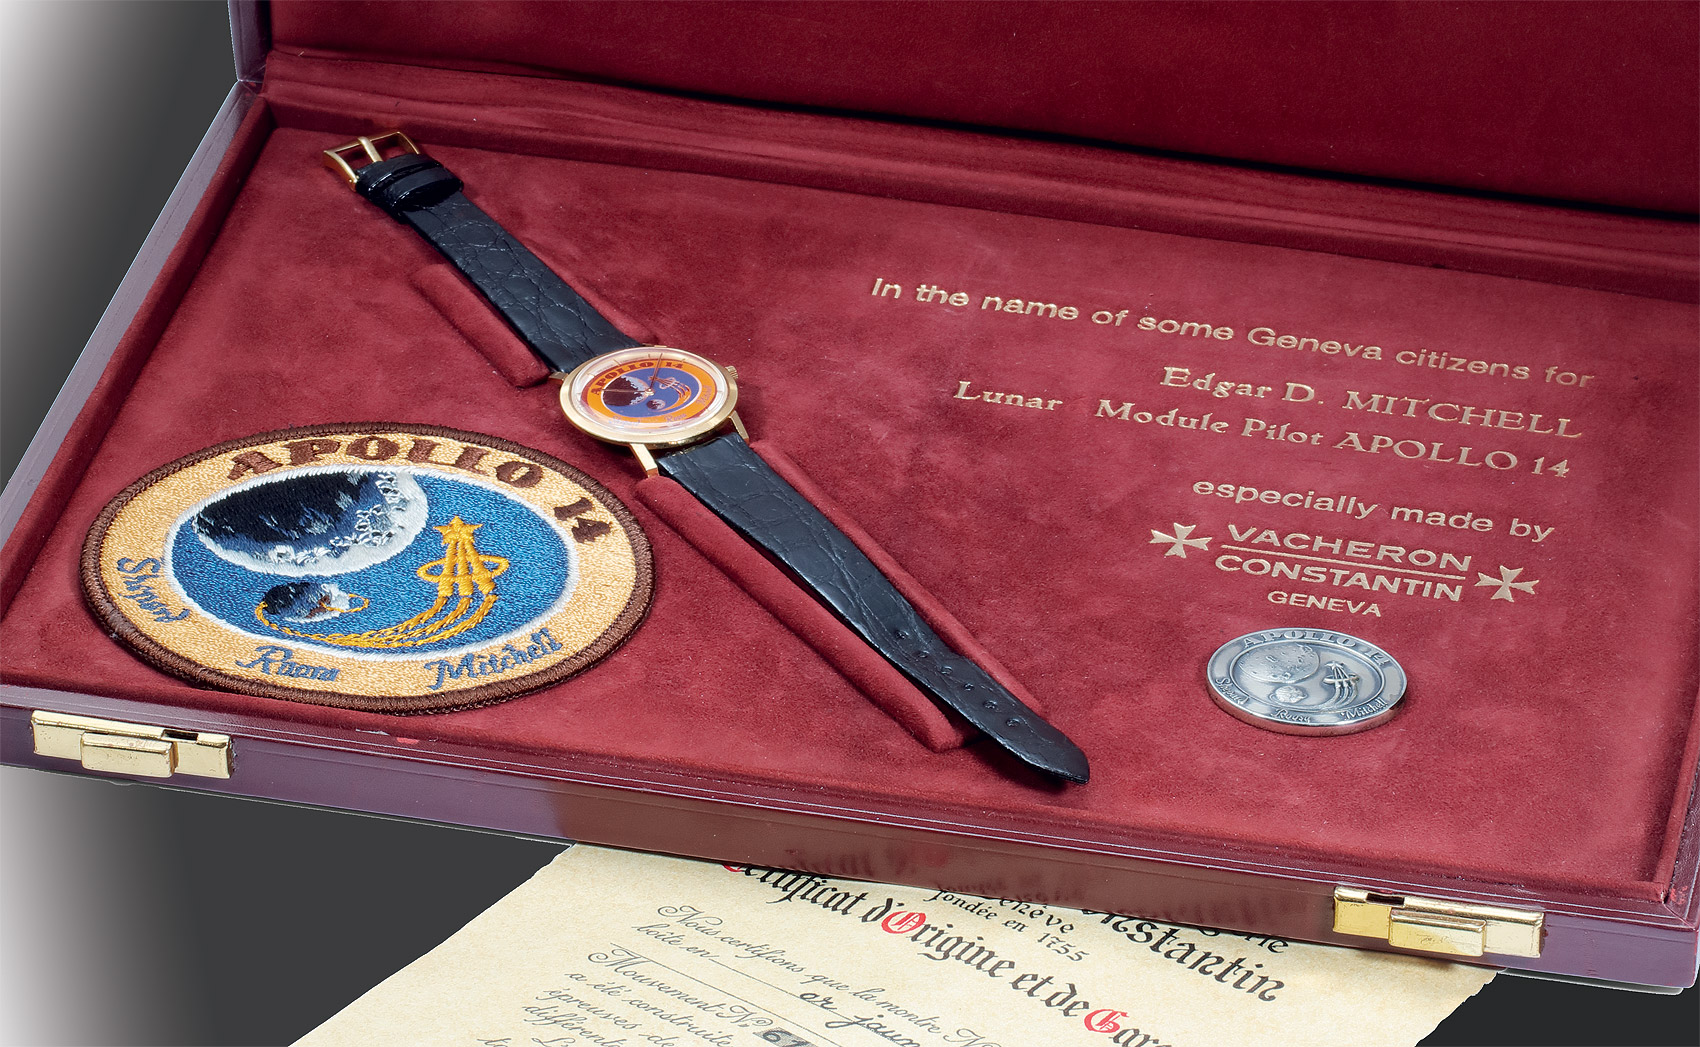 The Mysterious Vacheron Constantin Apollo 14 for Edgar Mitchell timepiece